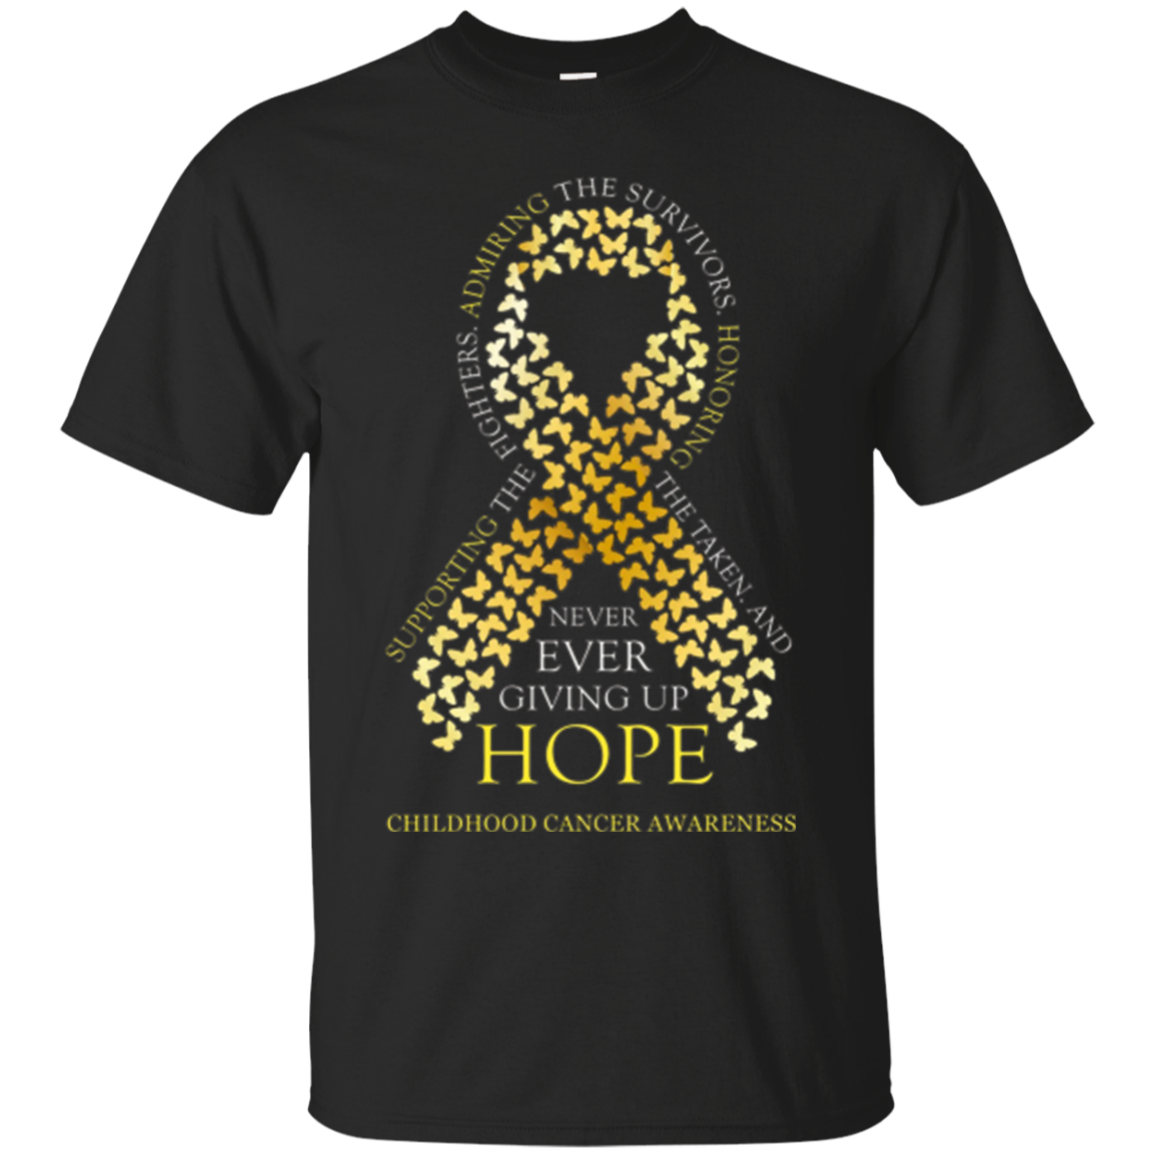 Childhood Cancer Awareness T Shirt